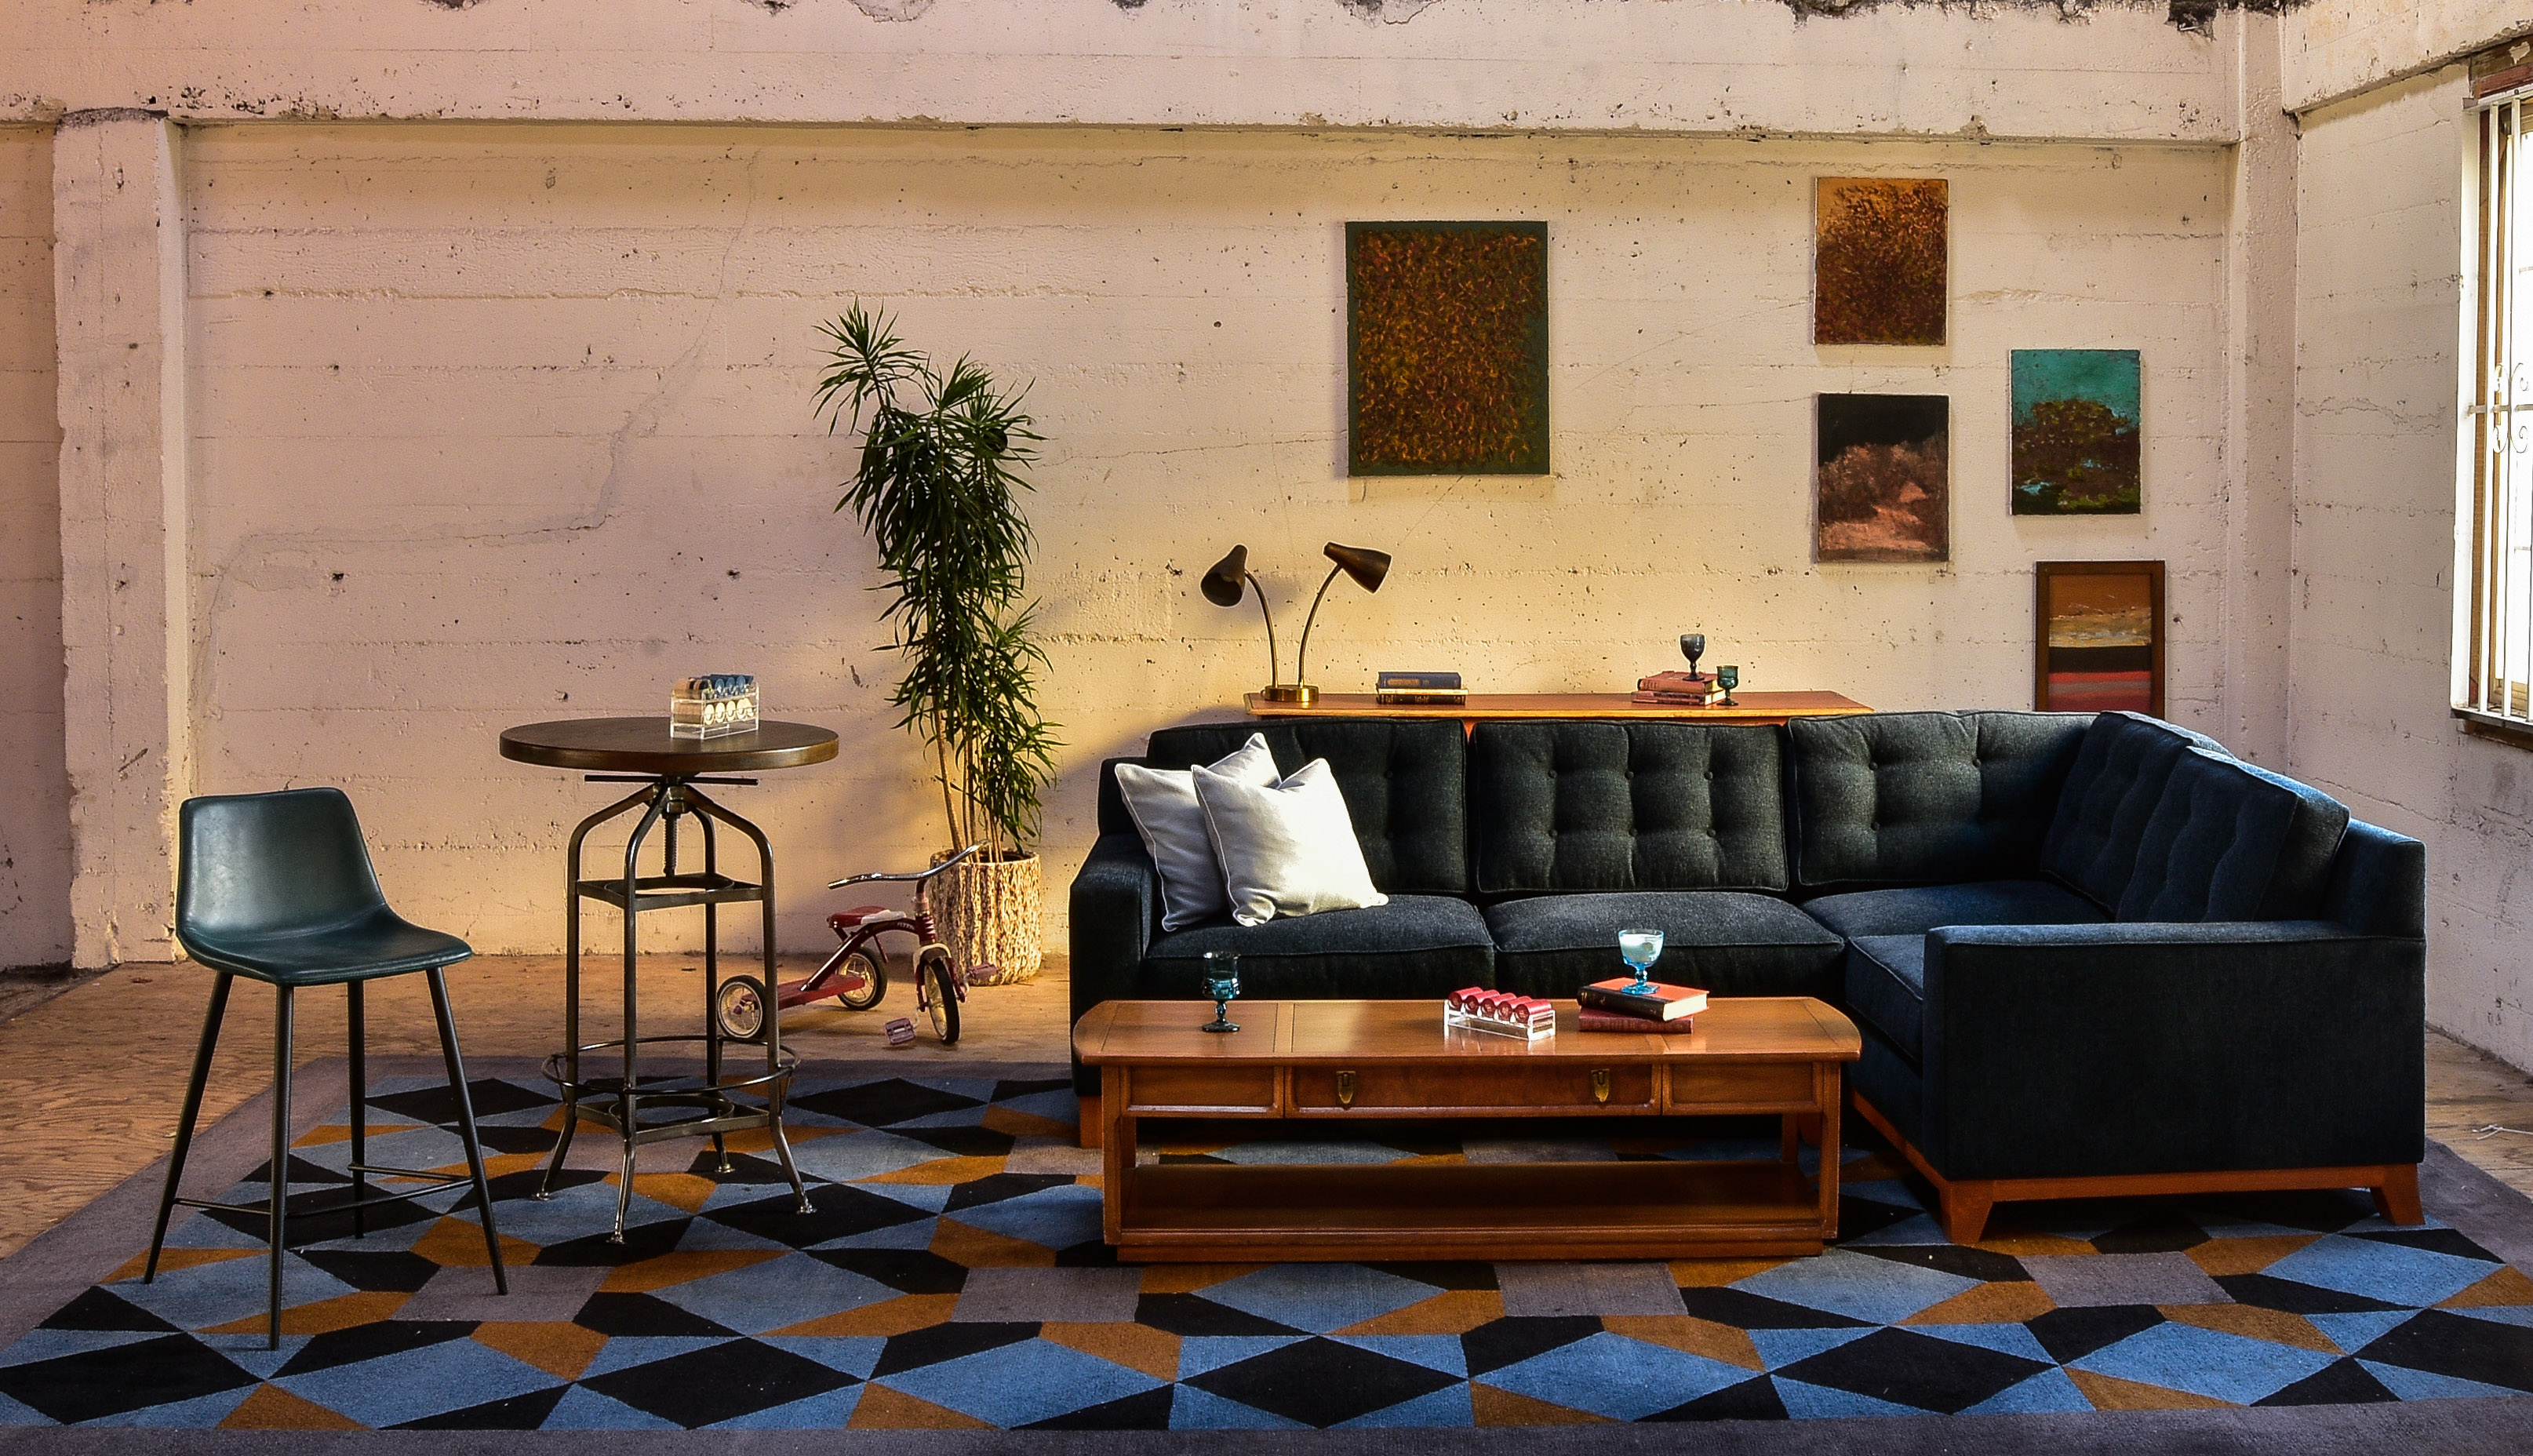 Blue sofa in living room with decor and plants